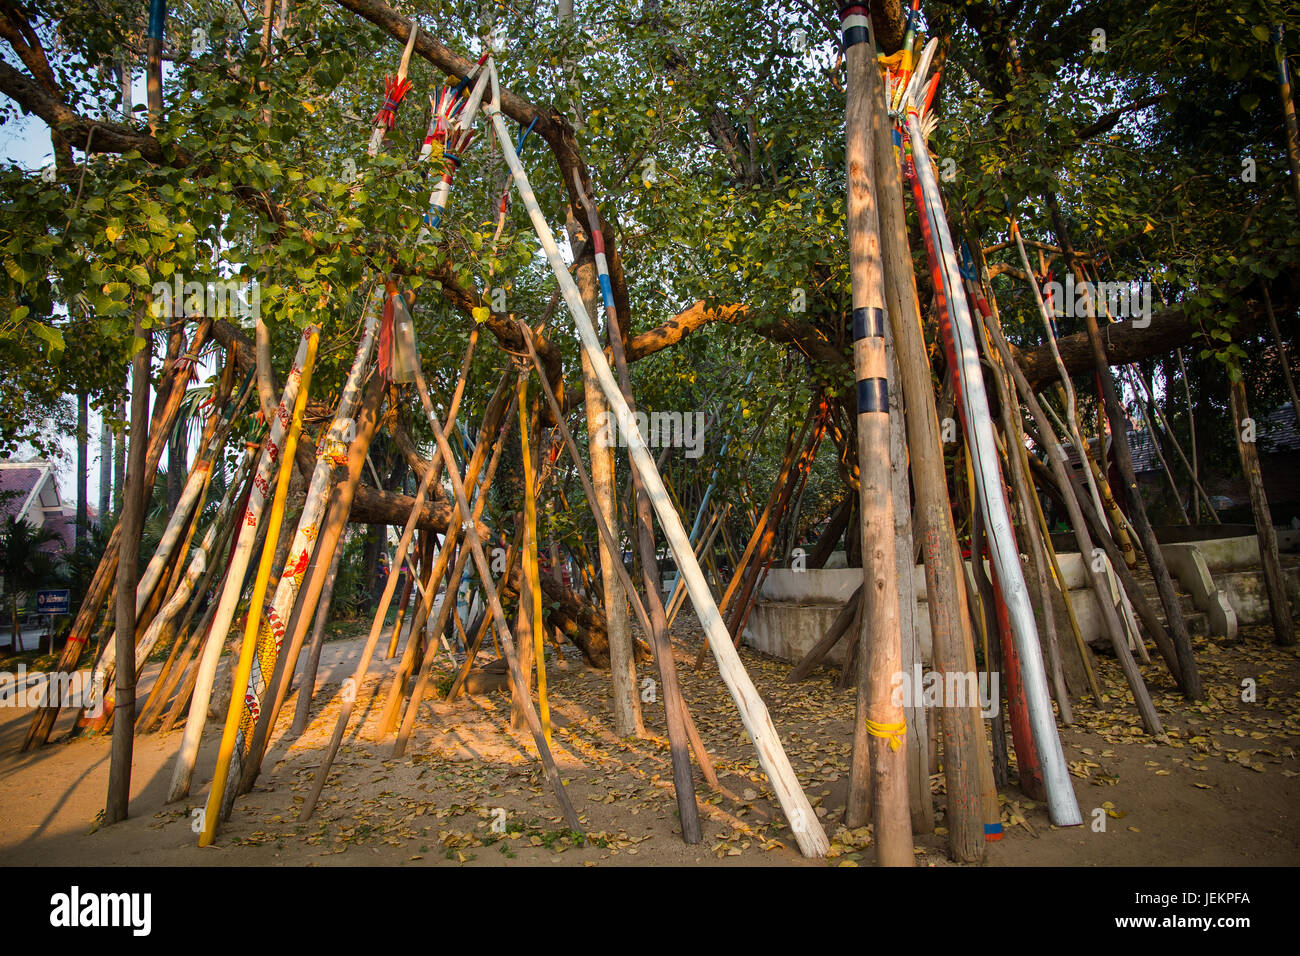 Believer of Norhtern people of Thailand, stick support the old tree for long life. - Stock Image